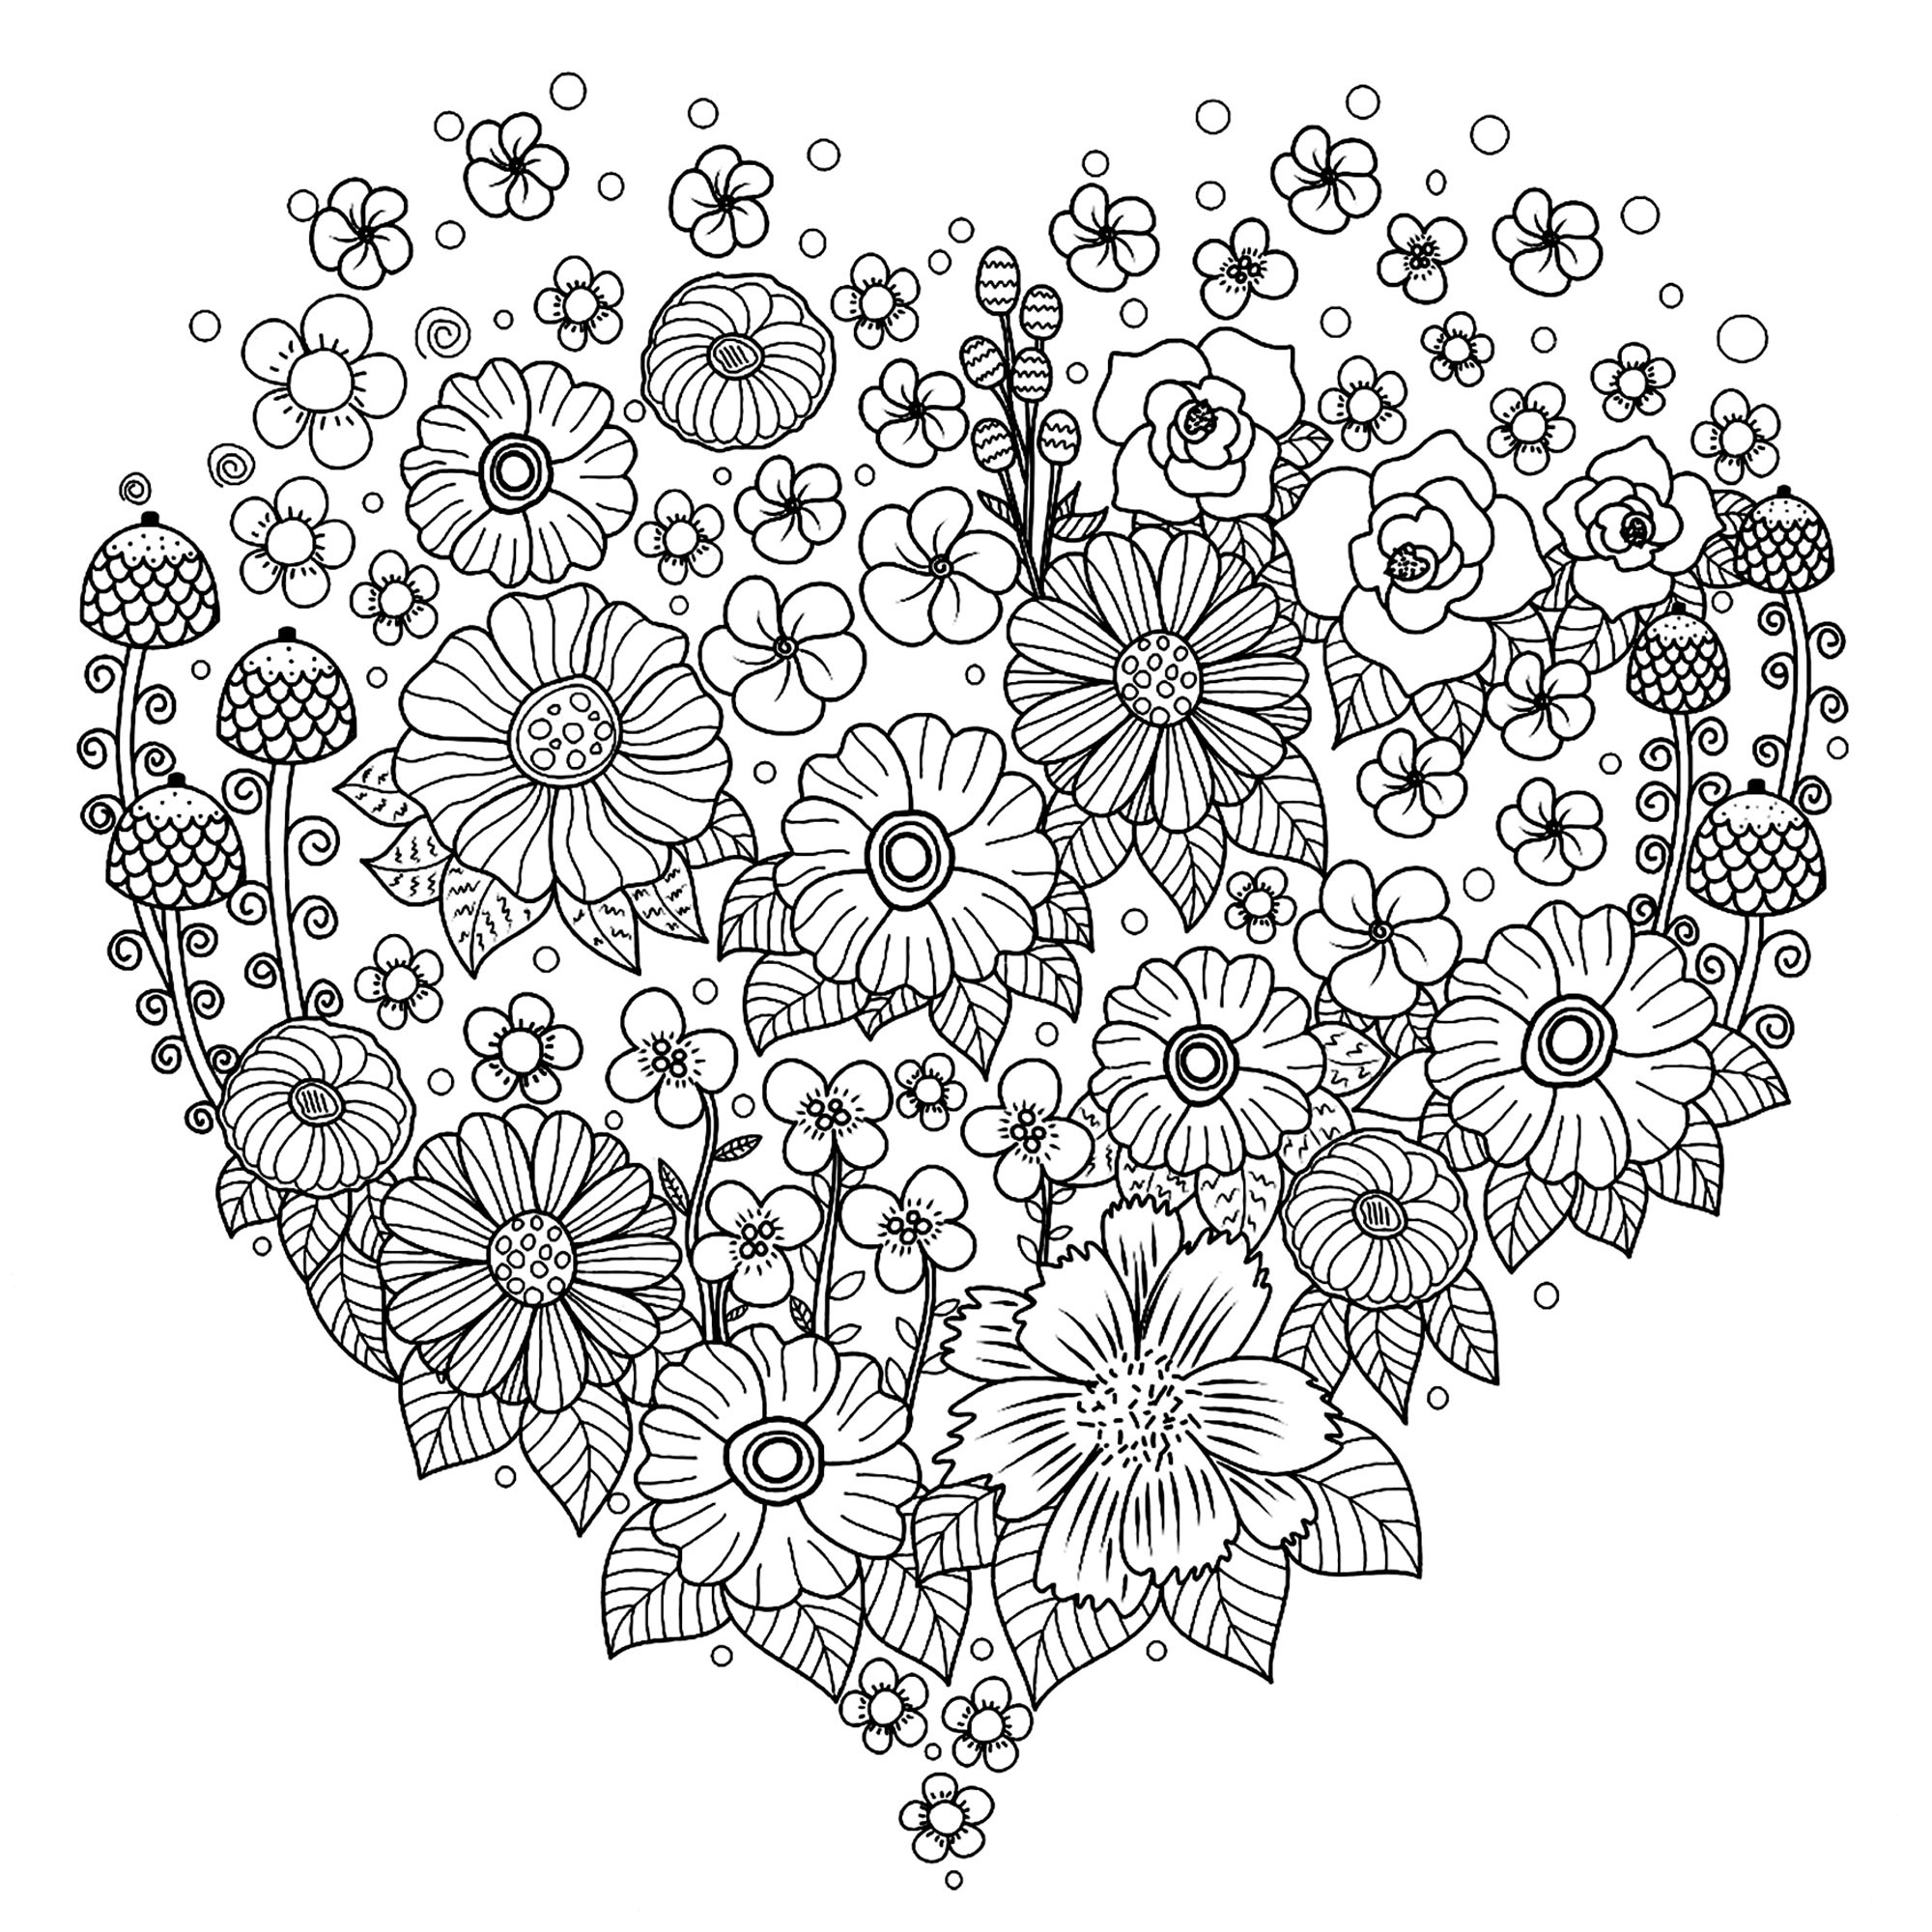 Heart with flowers - Flowers Adult Coloring Pages